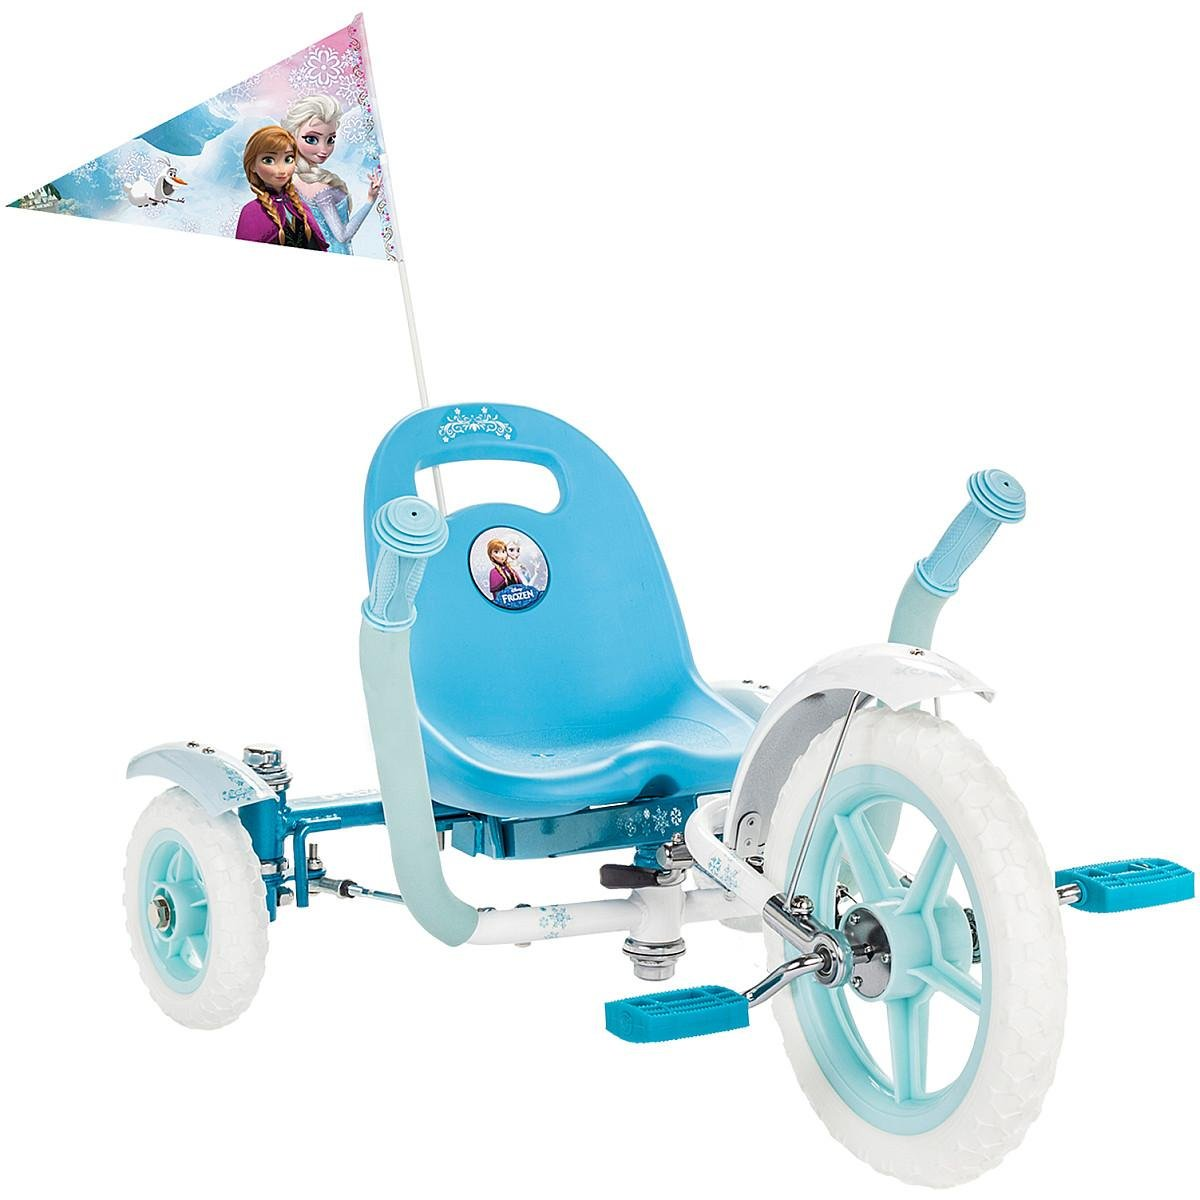 Mobo Tot Disney Frozen: A Toddler's Ergonomic Three Wheeled Cruiser Ride On, Blue